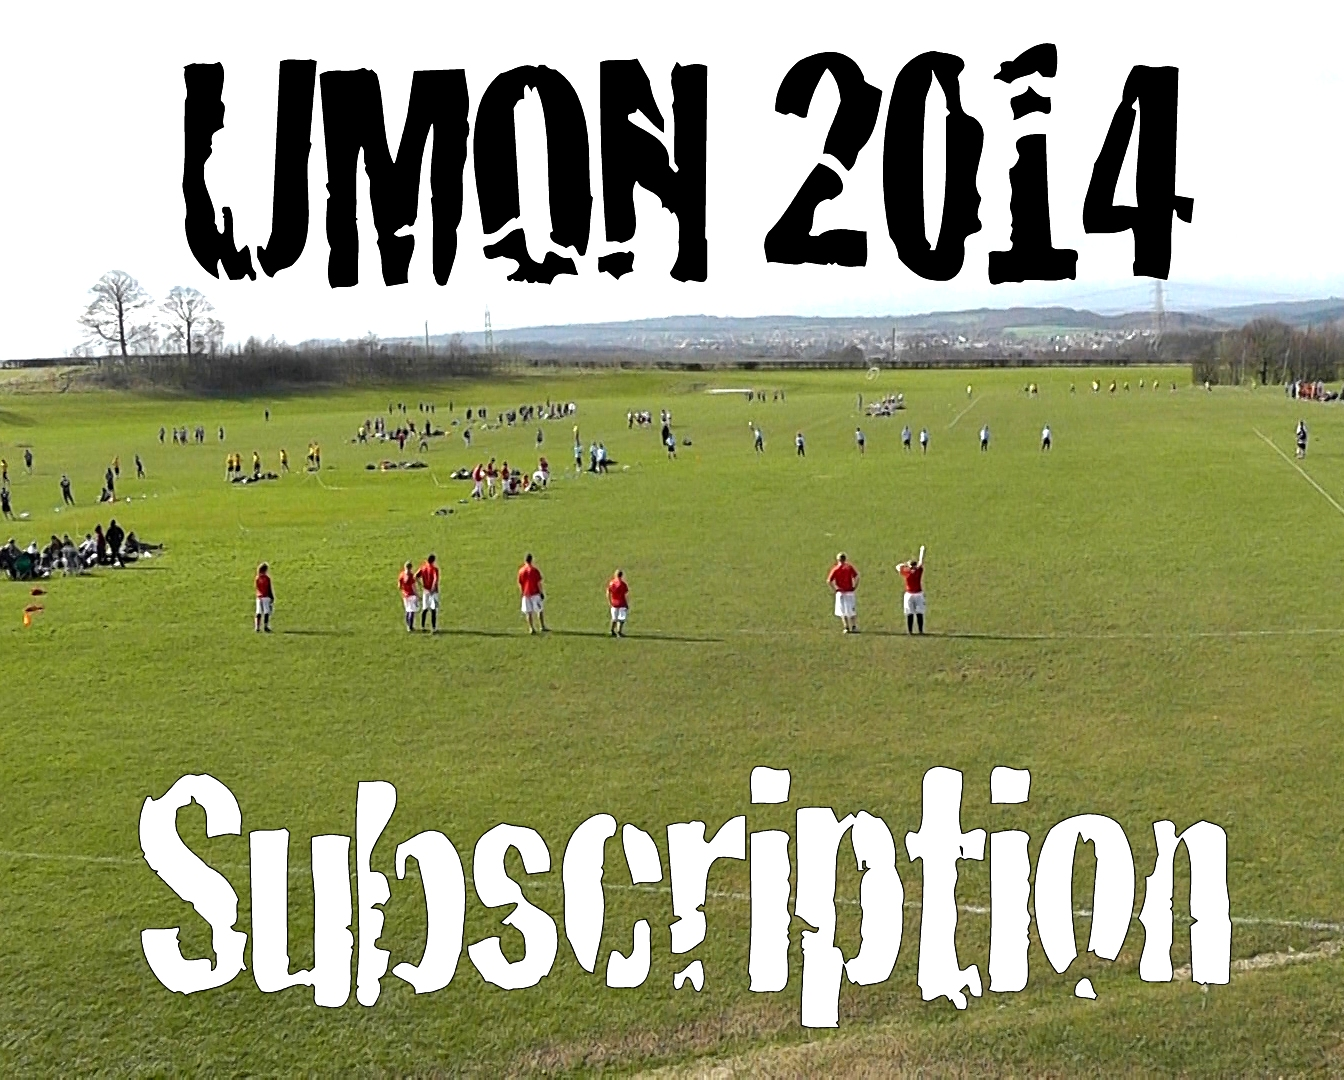 UMON 2014 Subscription Package